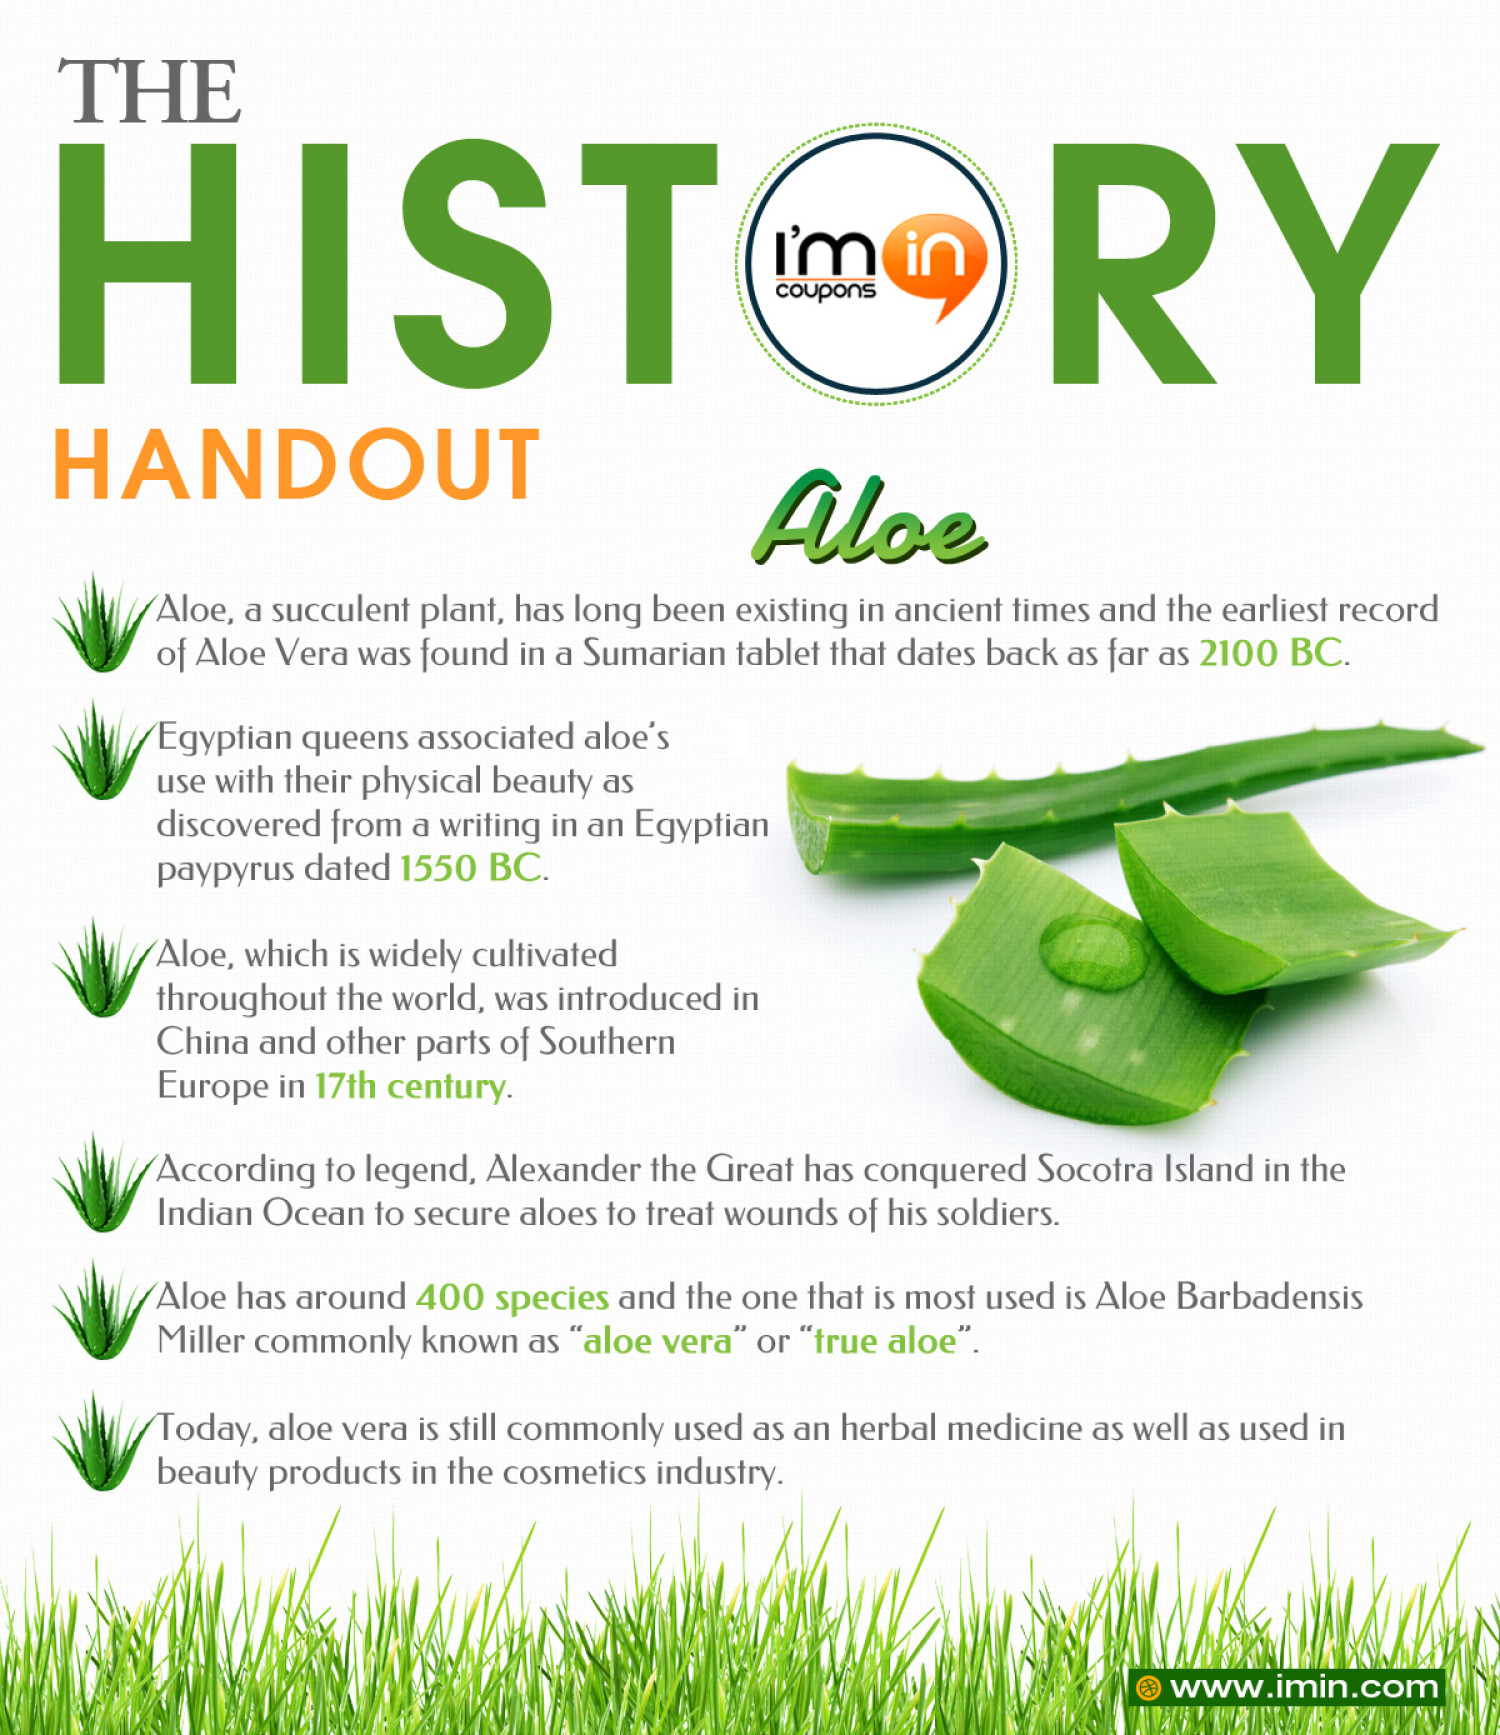 The History Handout - Aloe Infographic